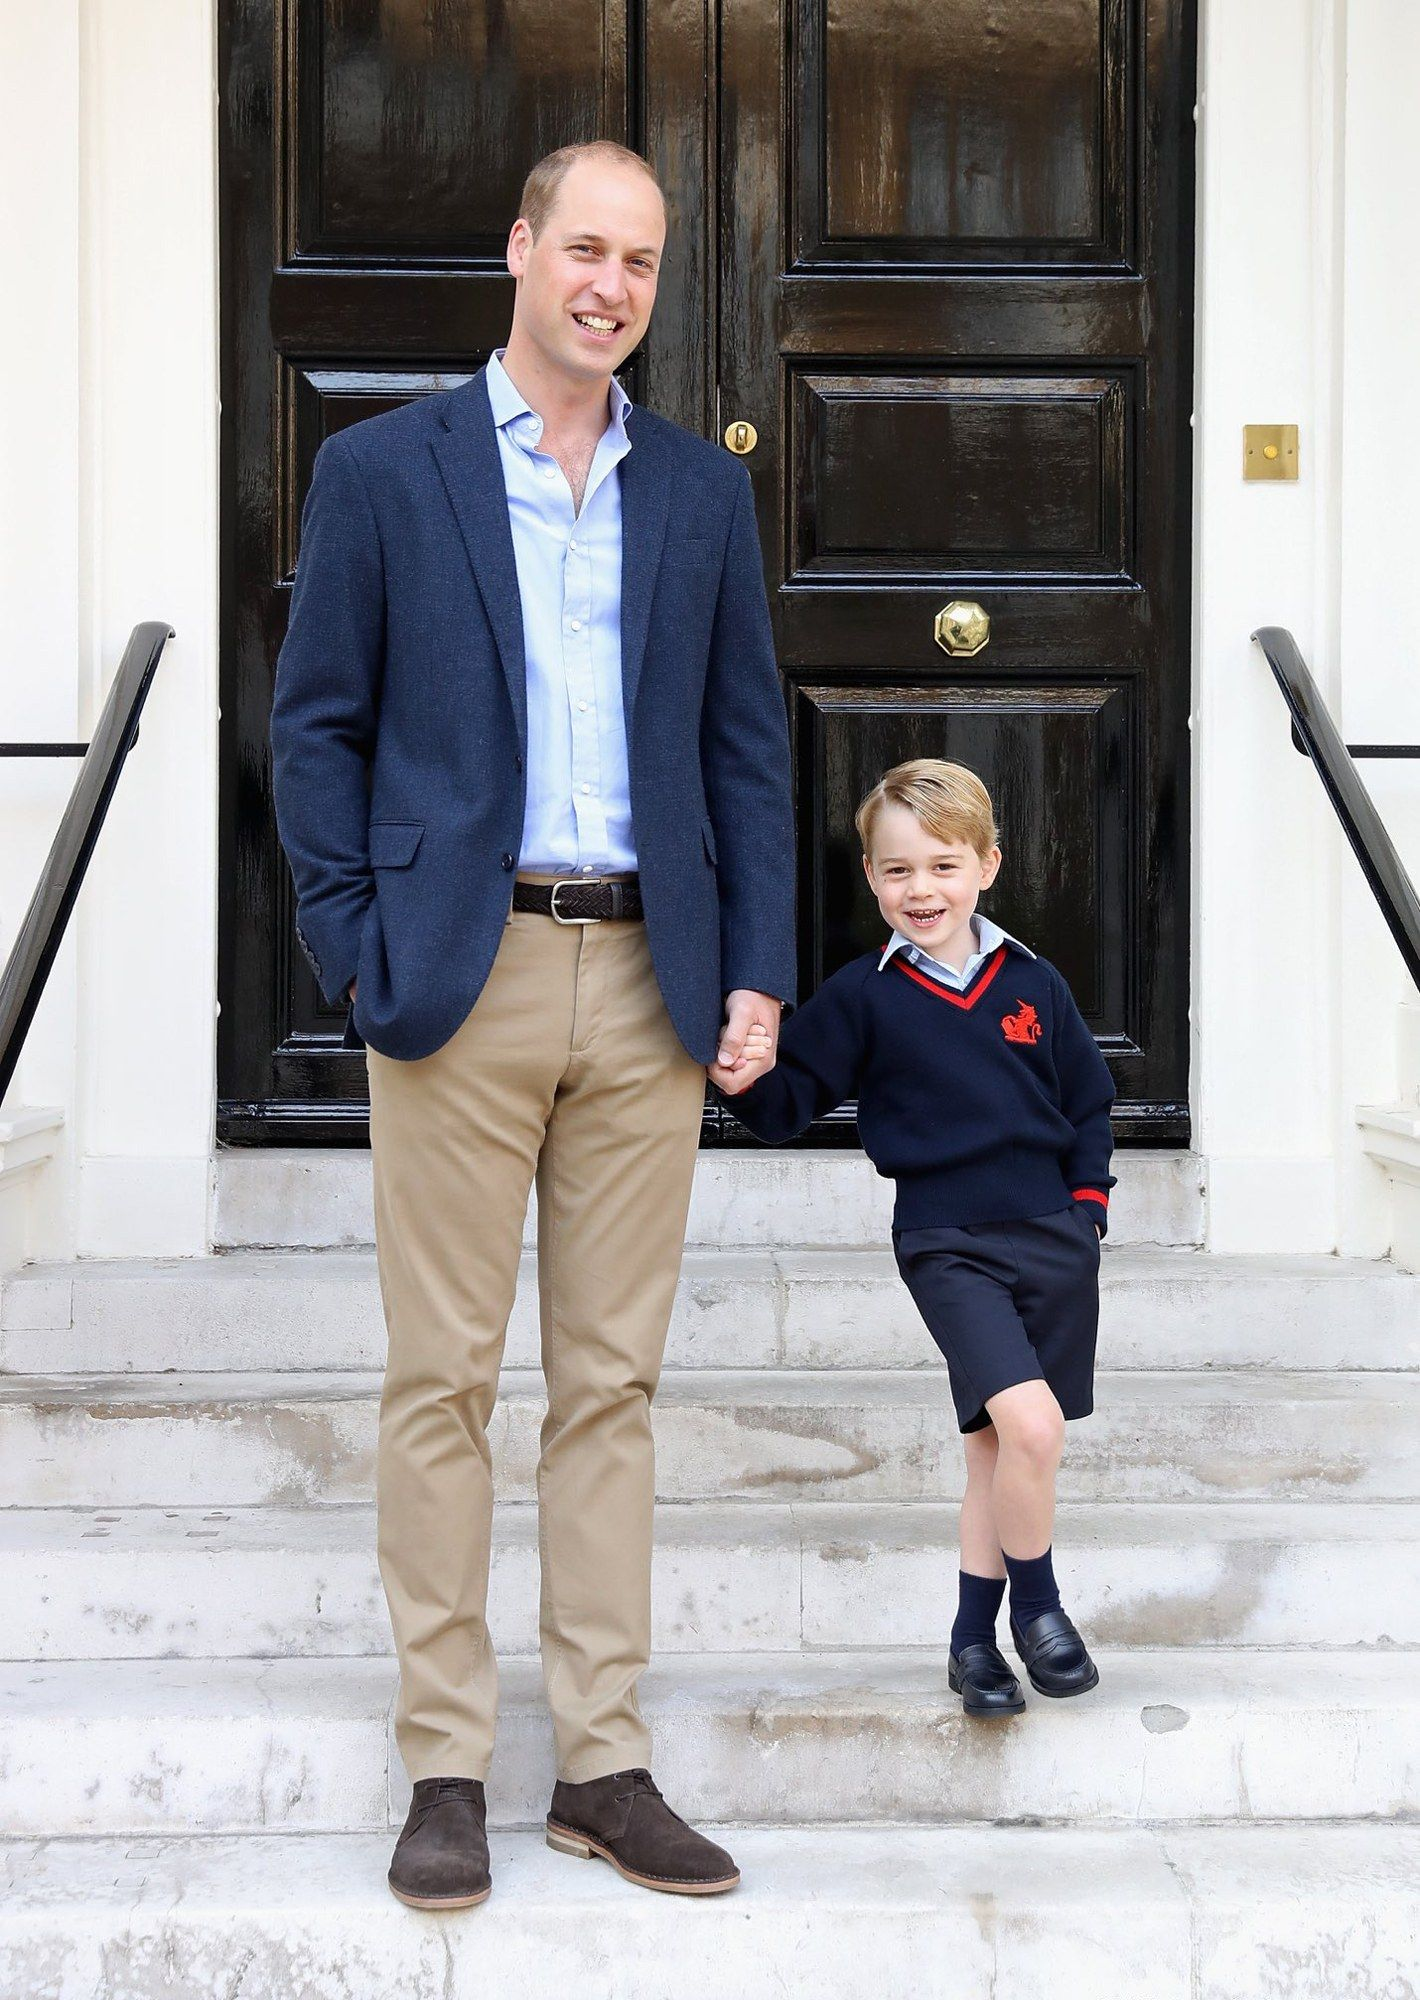 Prince George Poses For An Official And Cheerful First Day Of School Picture With Prince William With Images Prince William And Kate Prince George Royal Family Portrait